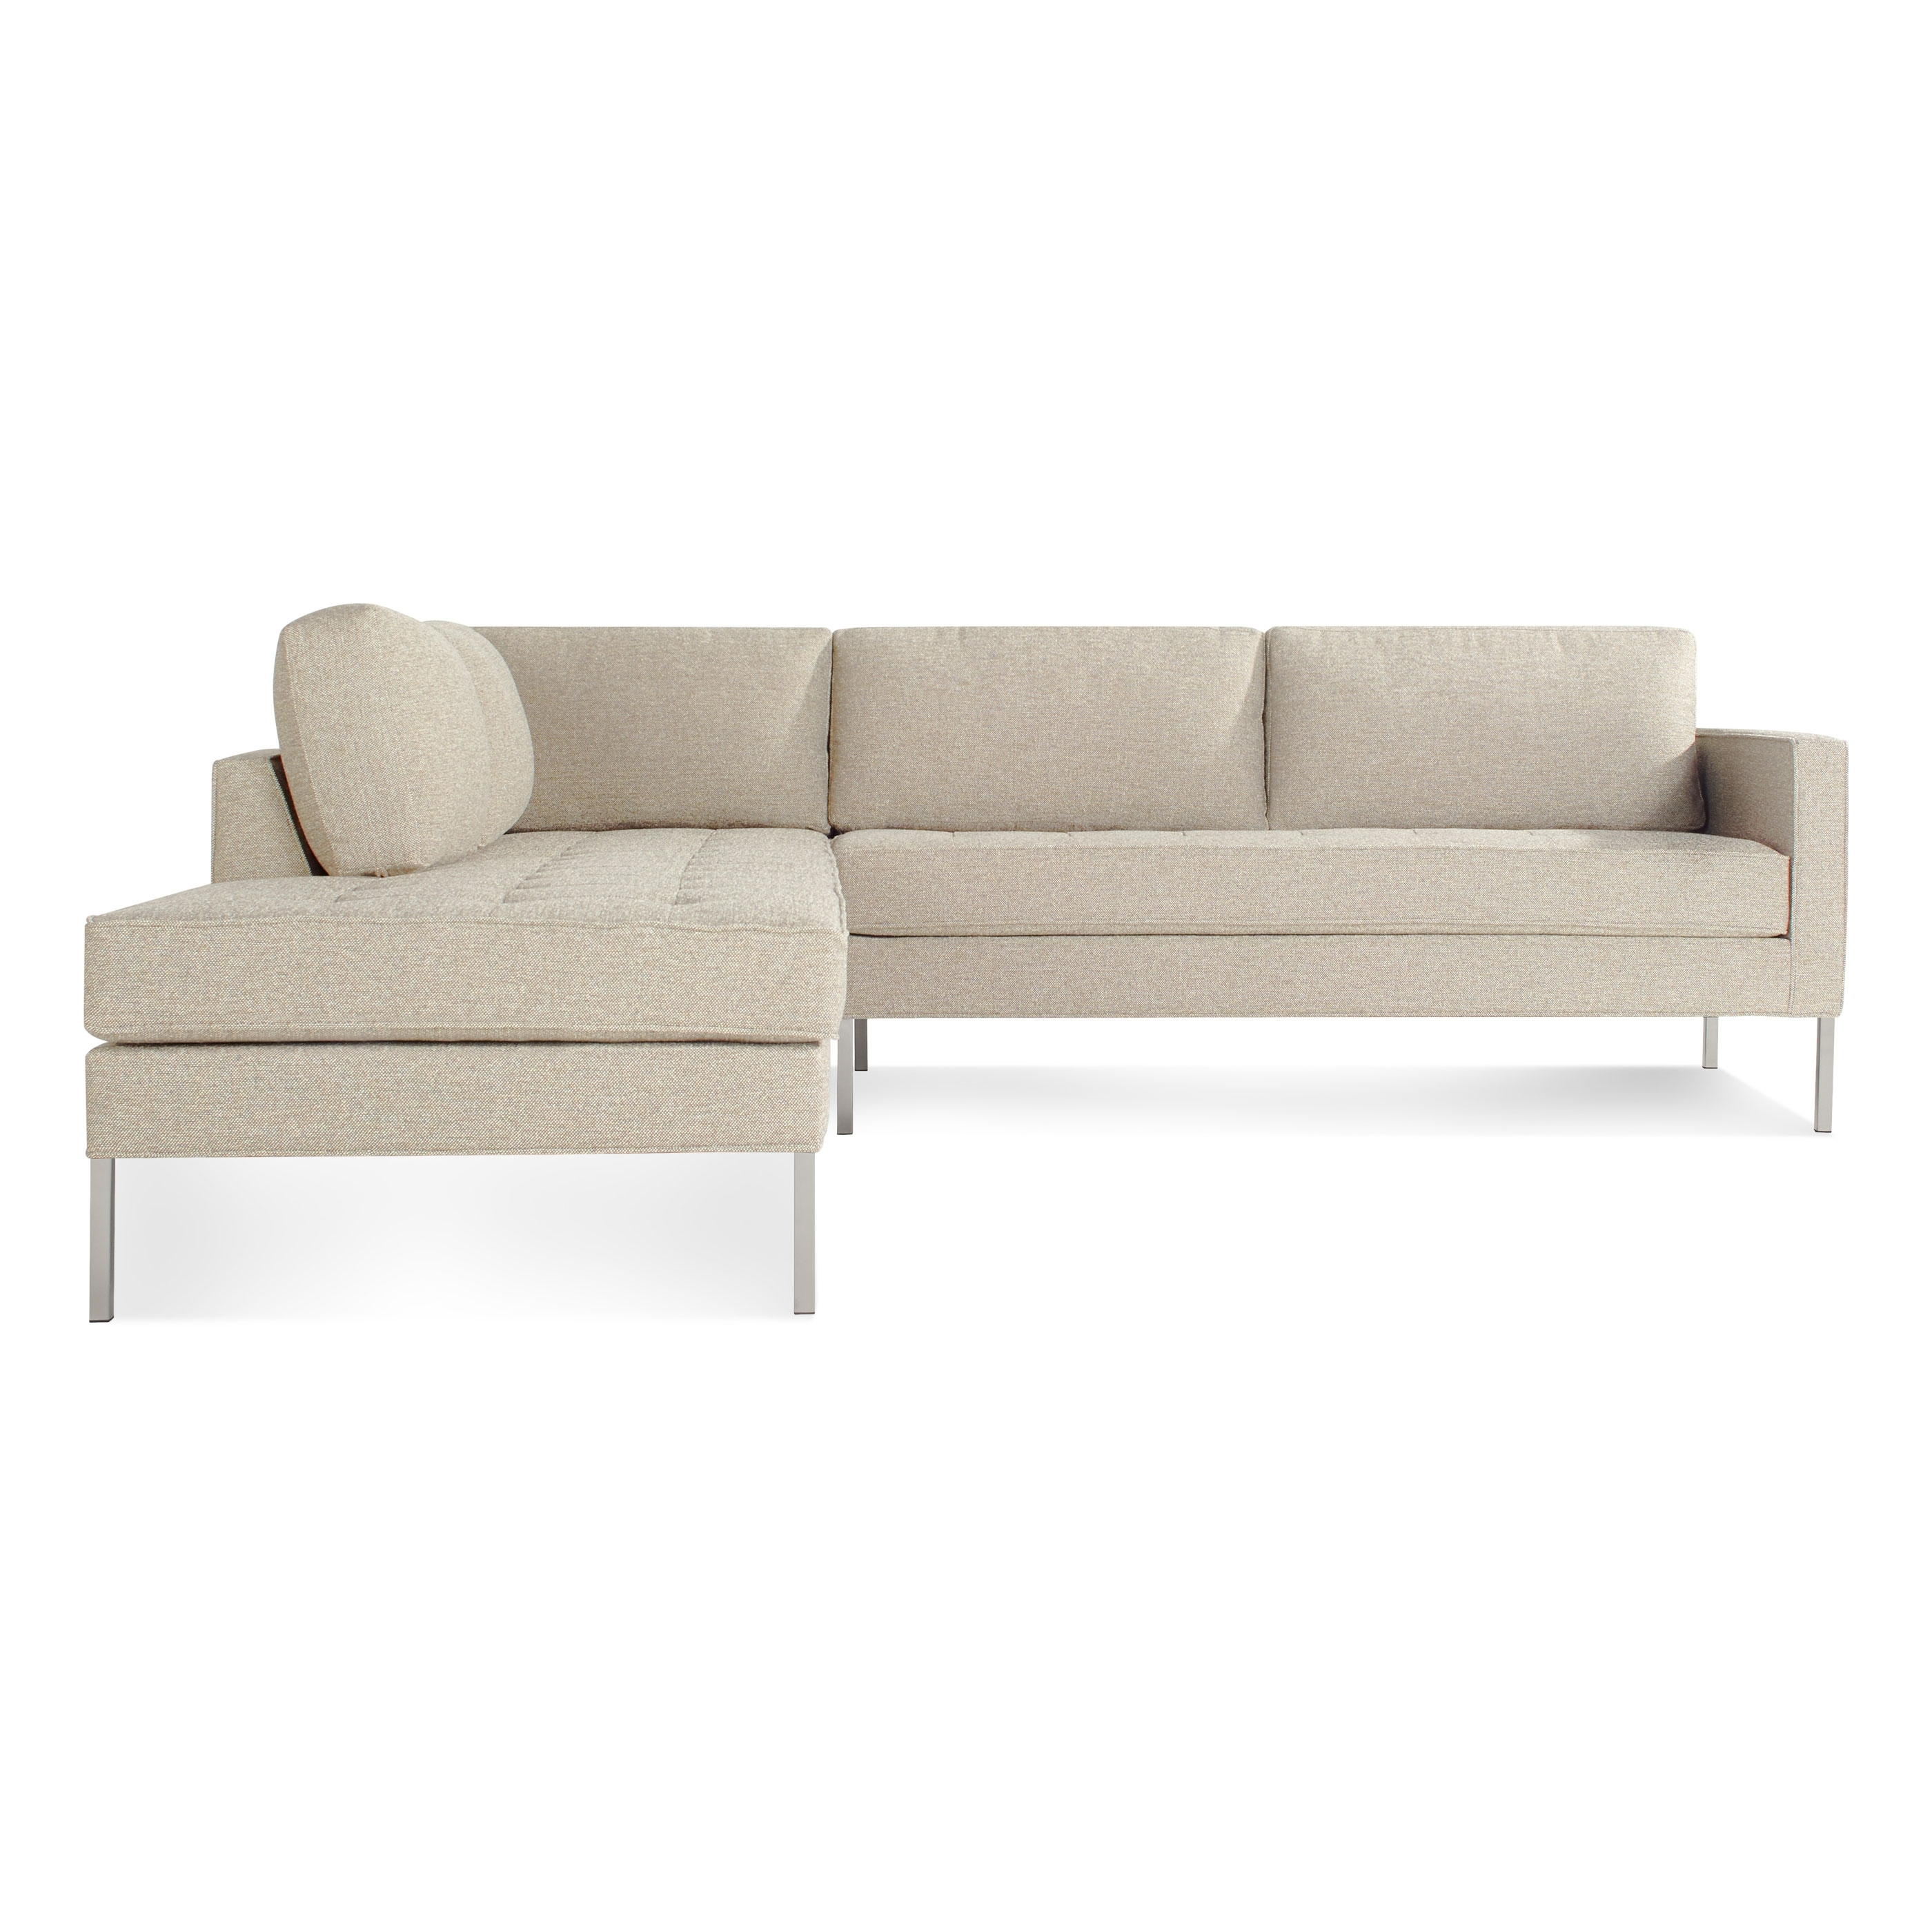 Sectional Couches Halifax Ns: 10 Ideas Of Nova Scotia Sectional Sofas